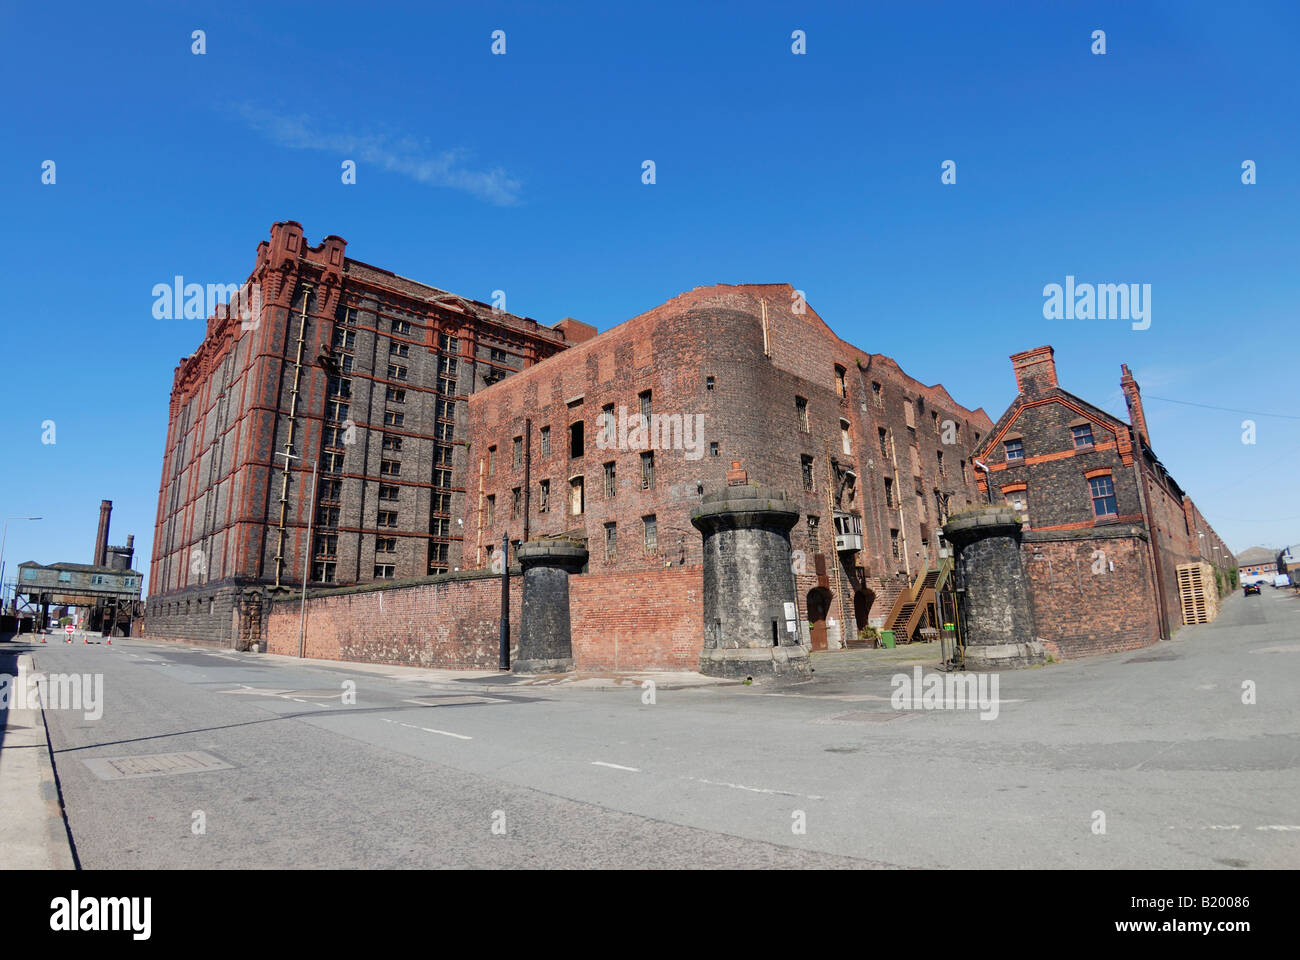 The Grade II listed buildings of the Tobacco Warehouse complex at Stanley Dock by Liverpool Docks Stock Photo